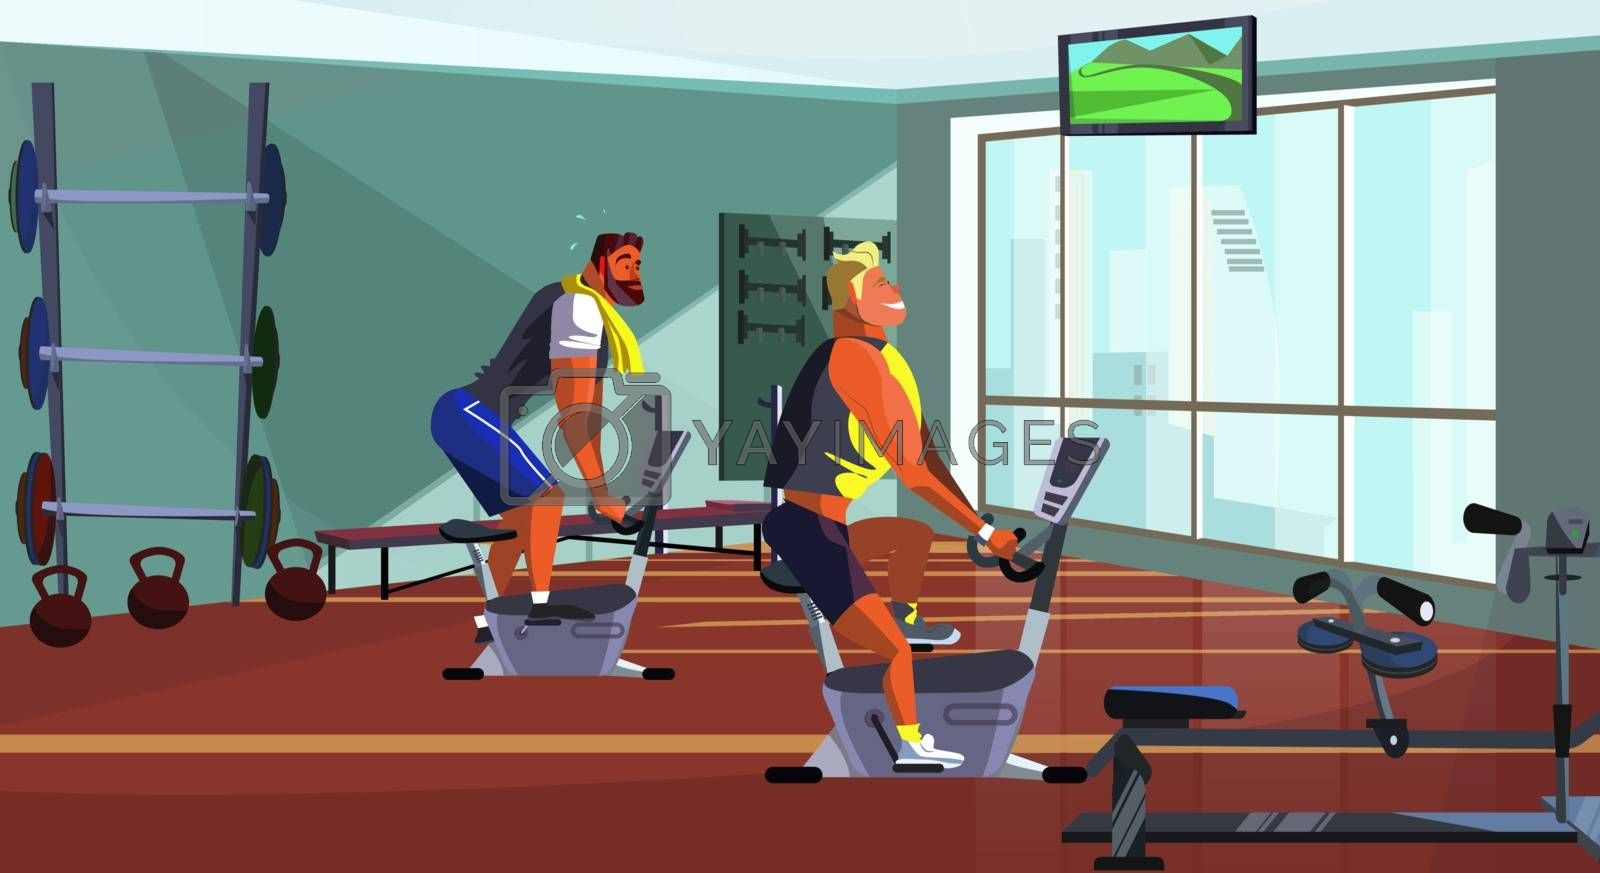 Athletic men training on fitness equipment vector illustration. Sporty guys spinning on bike in gym. Lifestyle concept